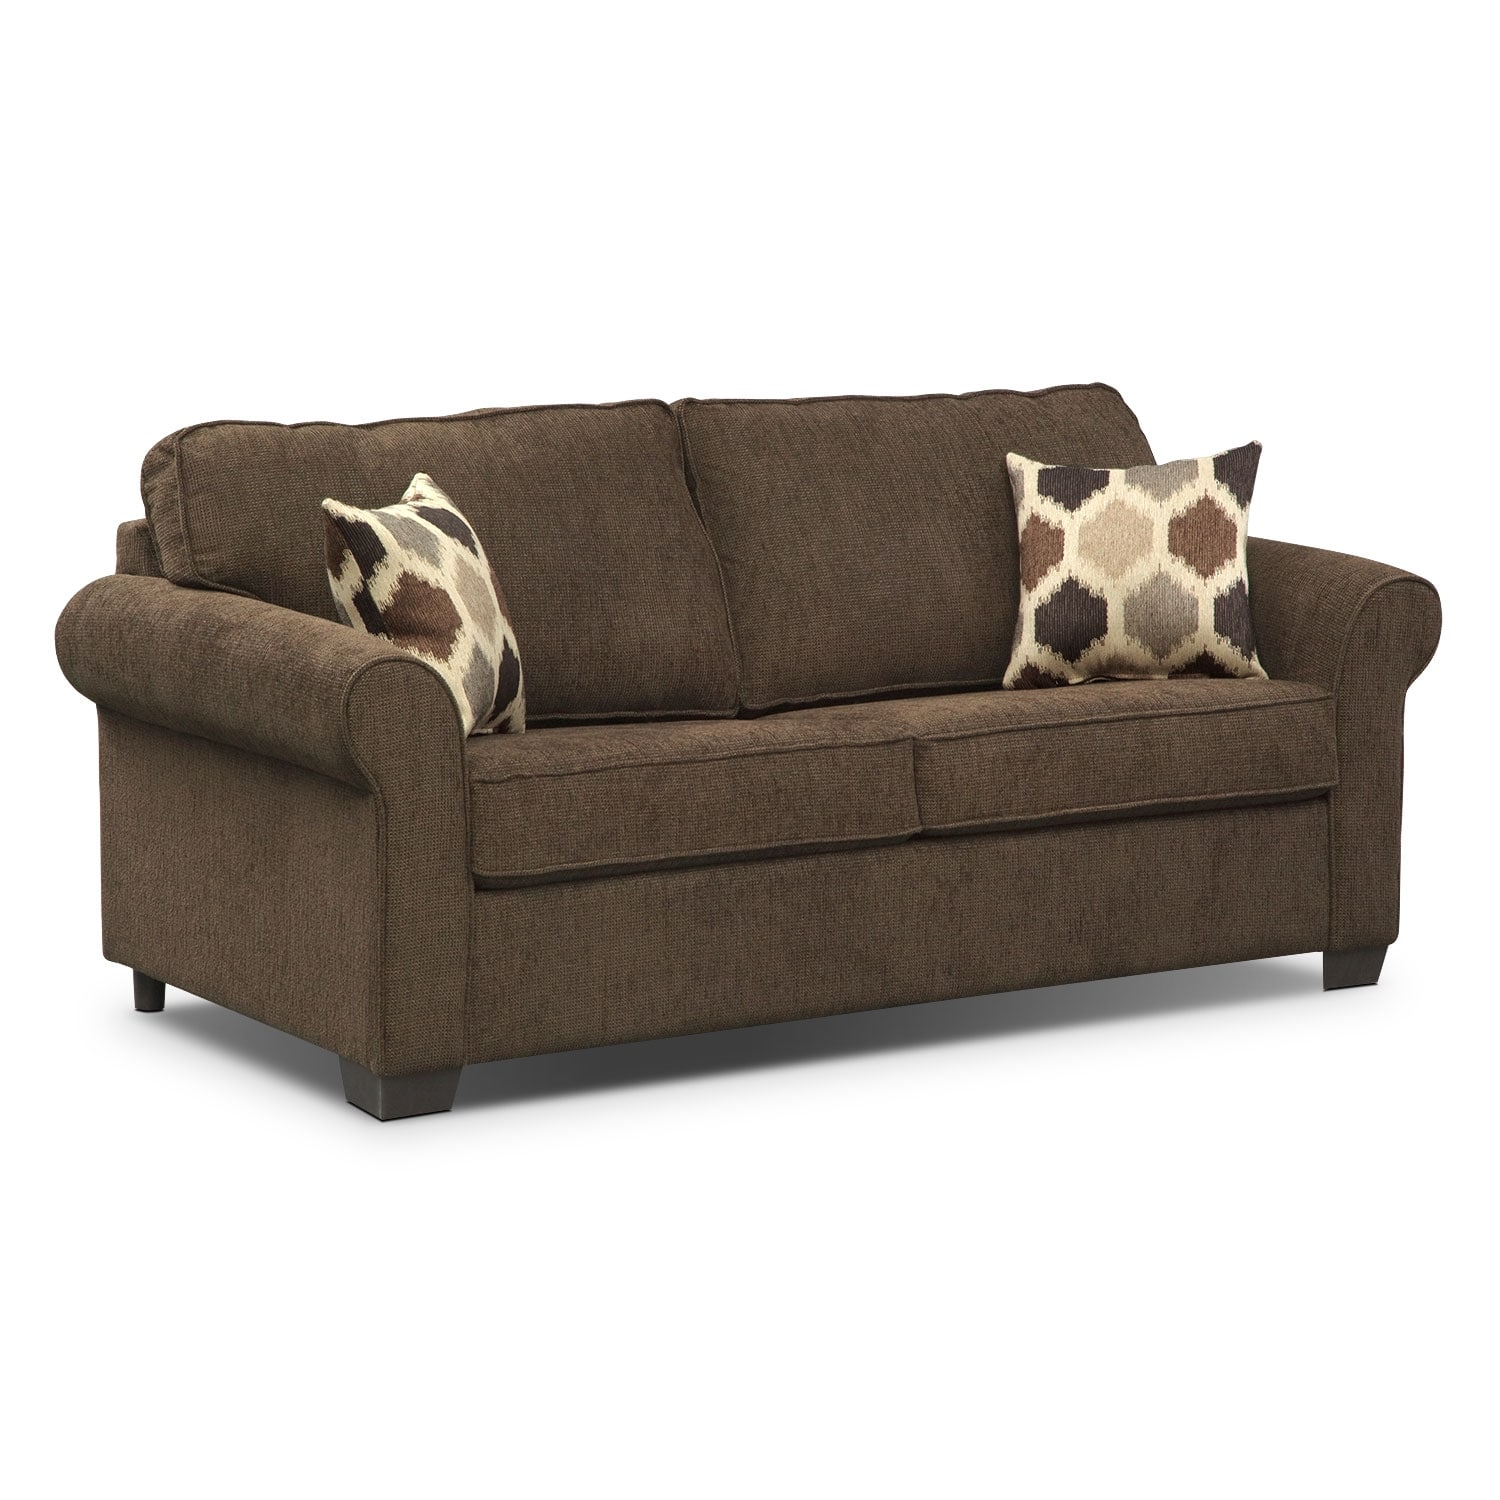 Fletcher Full Innerspring Sleeper Sofa - Chocolate | Value City Furniture